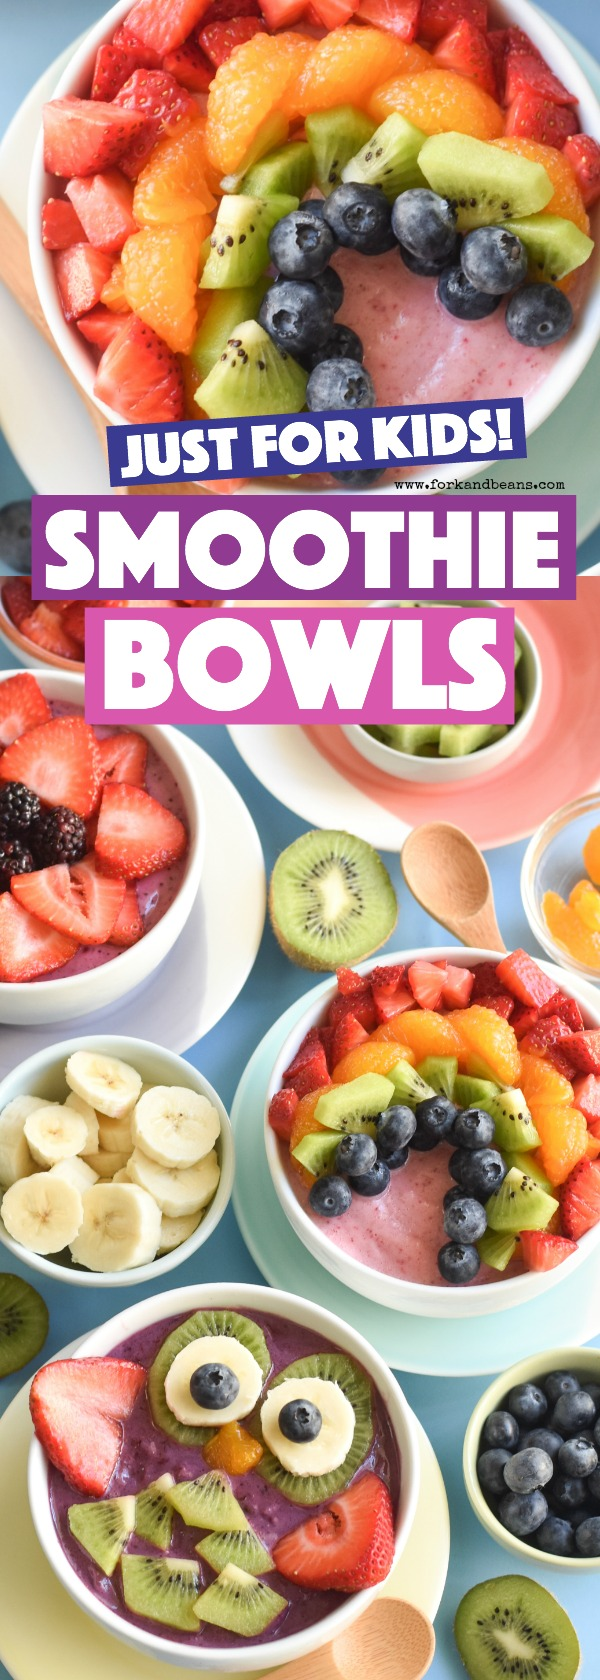 Make your family's favorite breakfast by turning frozen fruit and yogurt into these Smoothie Bowls kids will love (with instructions for 3 FUN designs).